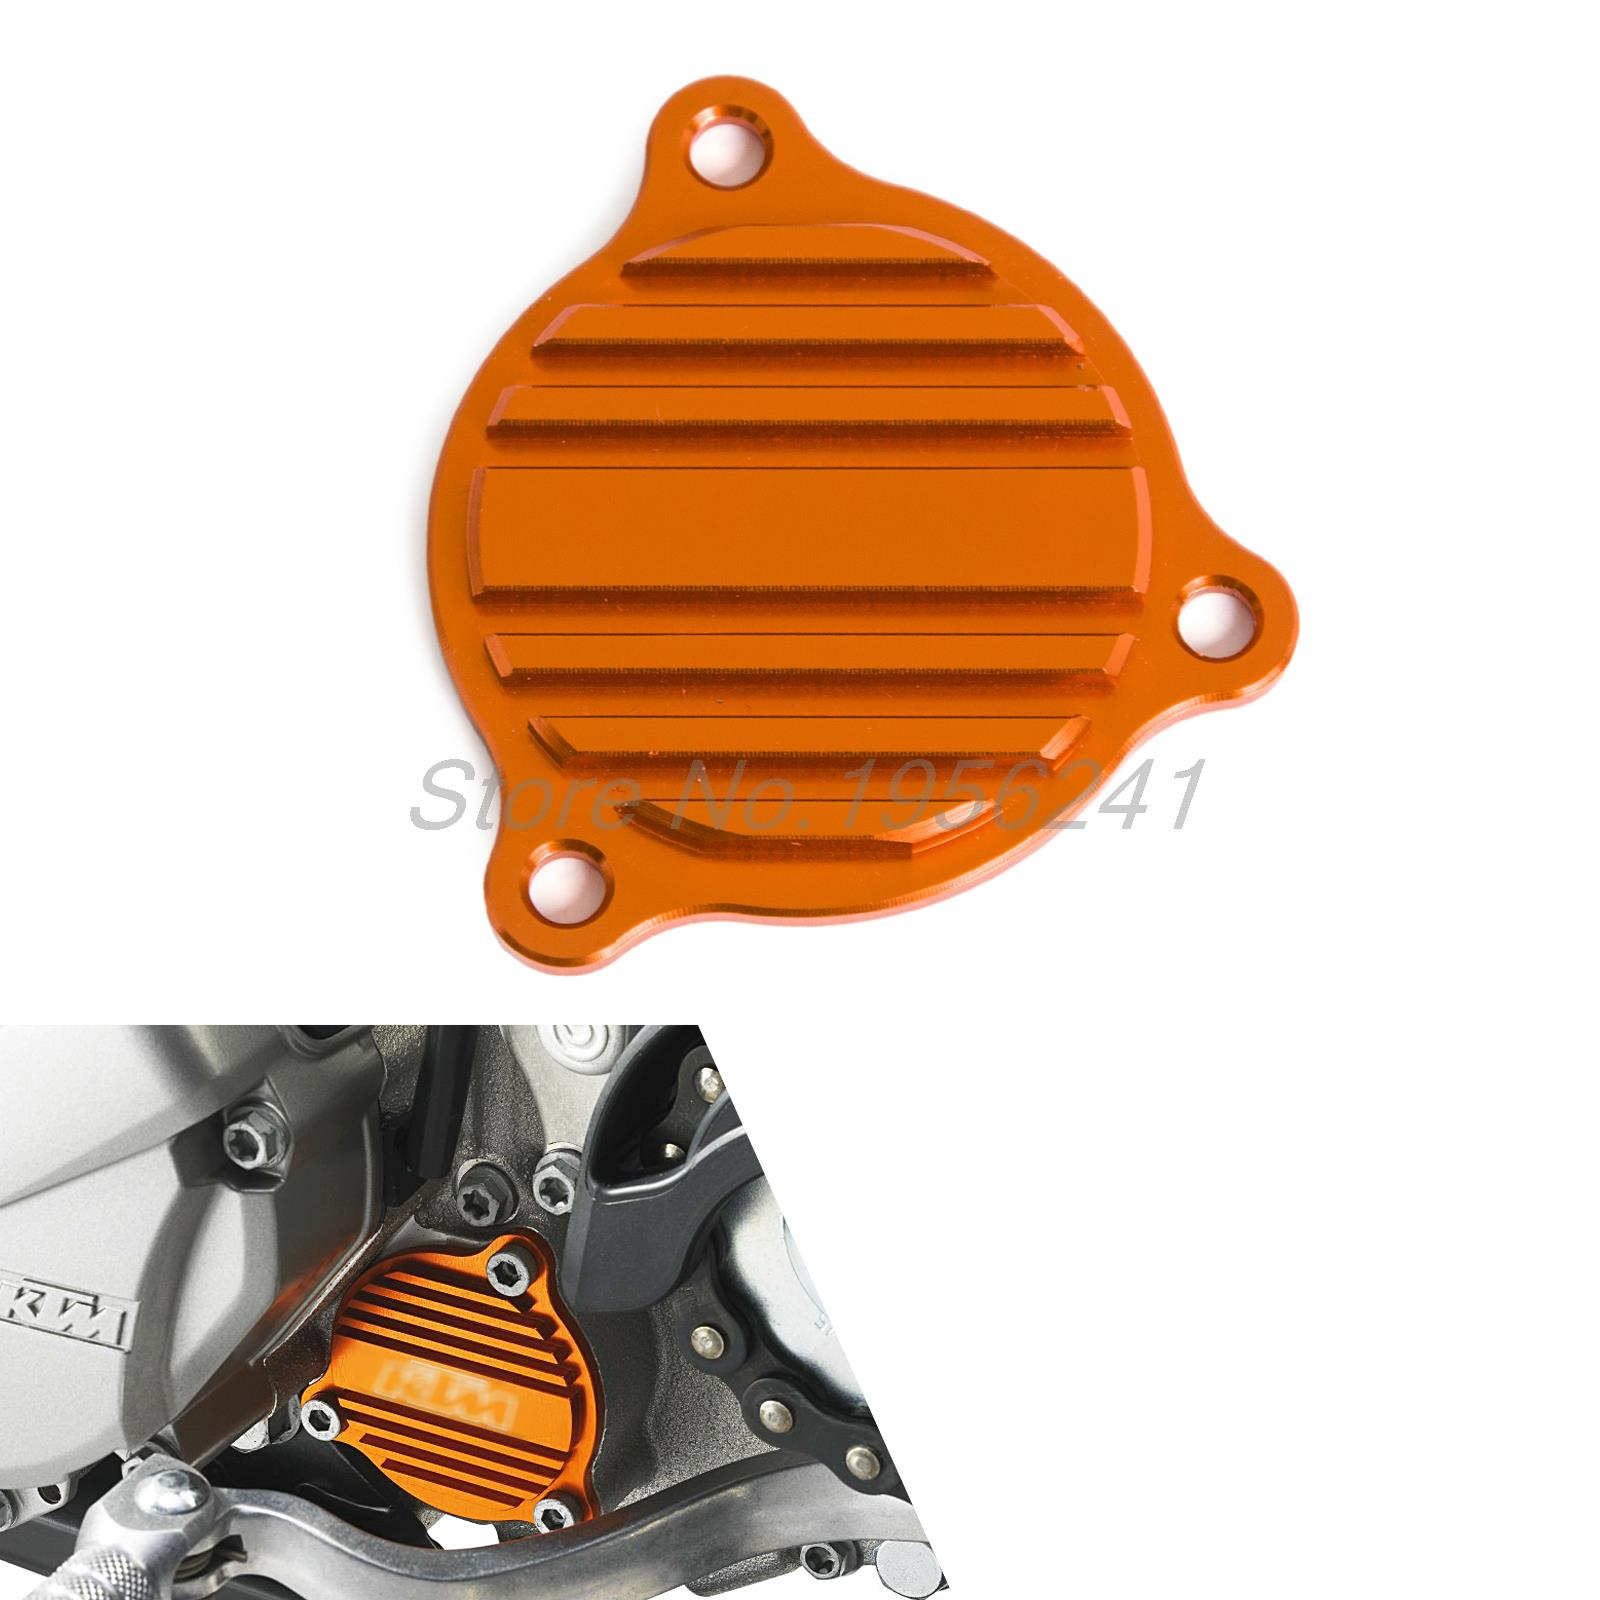 CNC Oil Filter Cover for KTM 250 350 SX-F SXF EXC-F EXCF XC-F XCF XCF-W XCFW FREERIDE orange cnc billet factory oil filter cover for ktm sx exc xc f xcf w 250 400 450 520 525 540 950 990